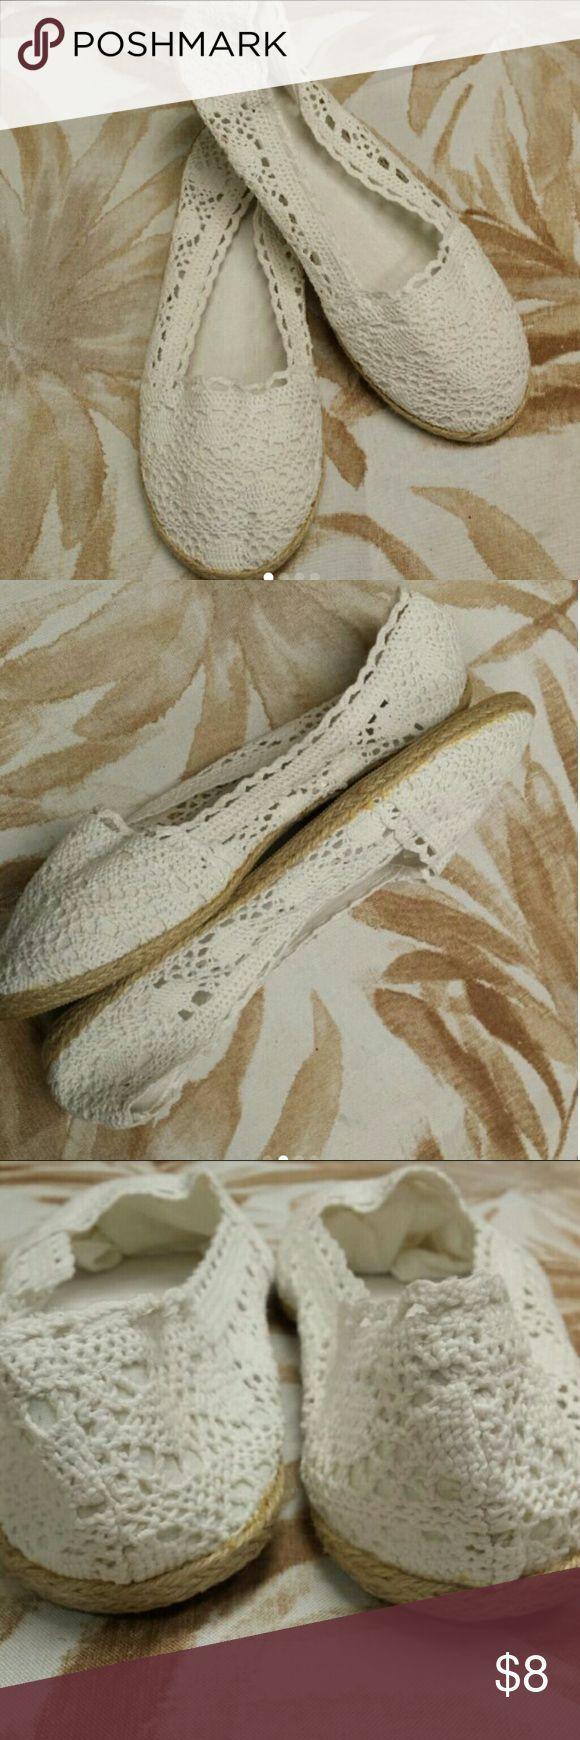 Tendance Chaussures 2017/ 2018 :    Description   NWOB Crochet Flats Sweet and so femme. Thesr flats are sized large. I wear  a 9 and thesr a big on me so the are more of a 9.5 – 10.  ☆ Comes from smoke-free and pet-free home. ☆ Bundle for discount. ☆ Offers  welcome. Shoes Flats & Lo... - #Chausseurs https://madame.tn/fashion/chausseurs/tendance-chaussures-2017-2018-nwob-crochet-flats-sweet-and-so-femme-thesr-flats-are-sized-large-i-wear-a-9/